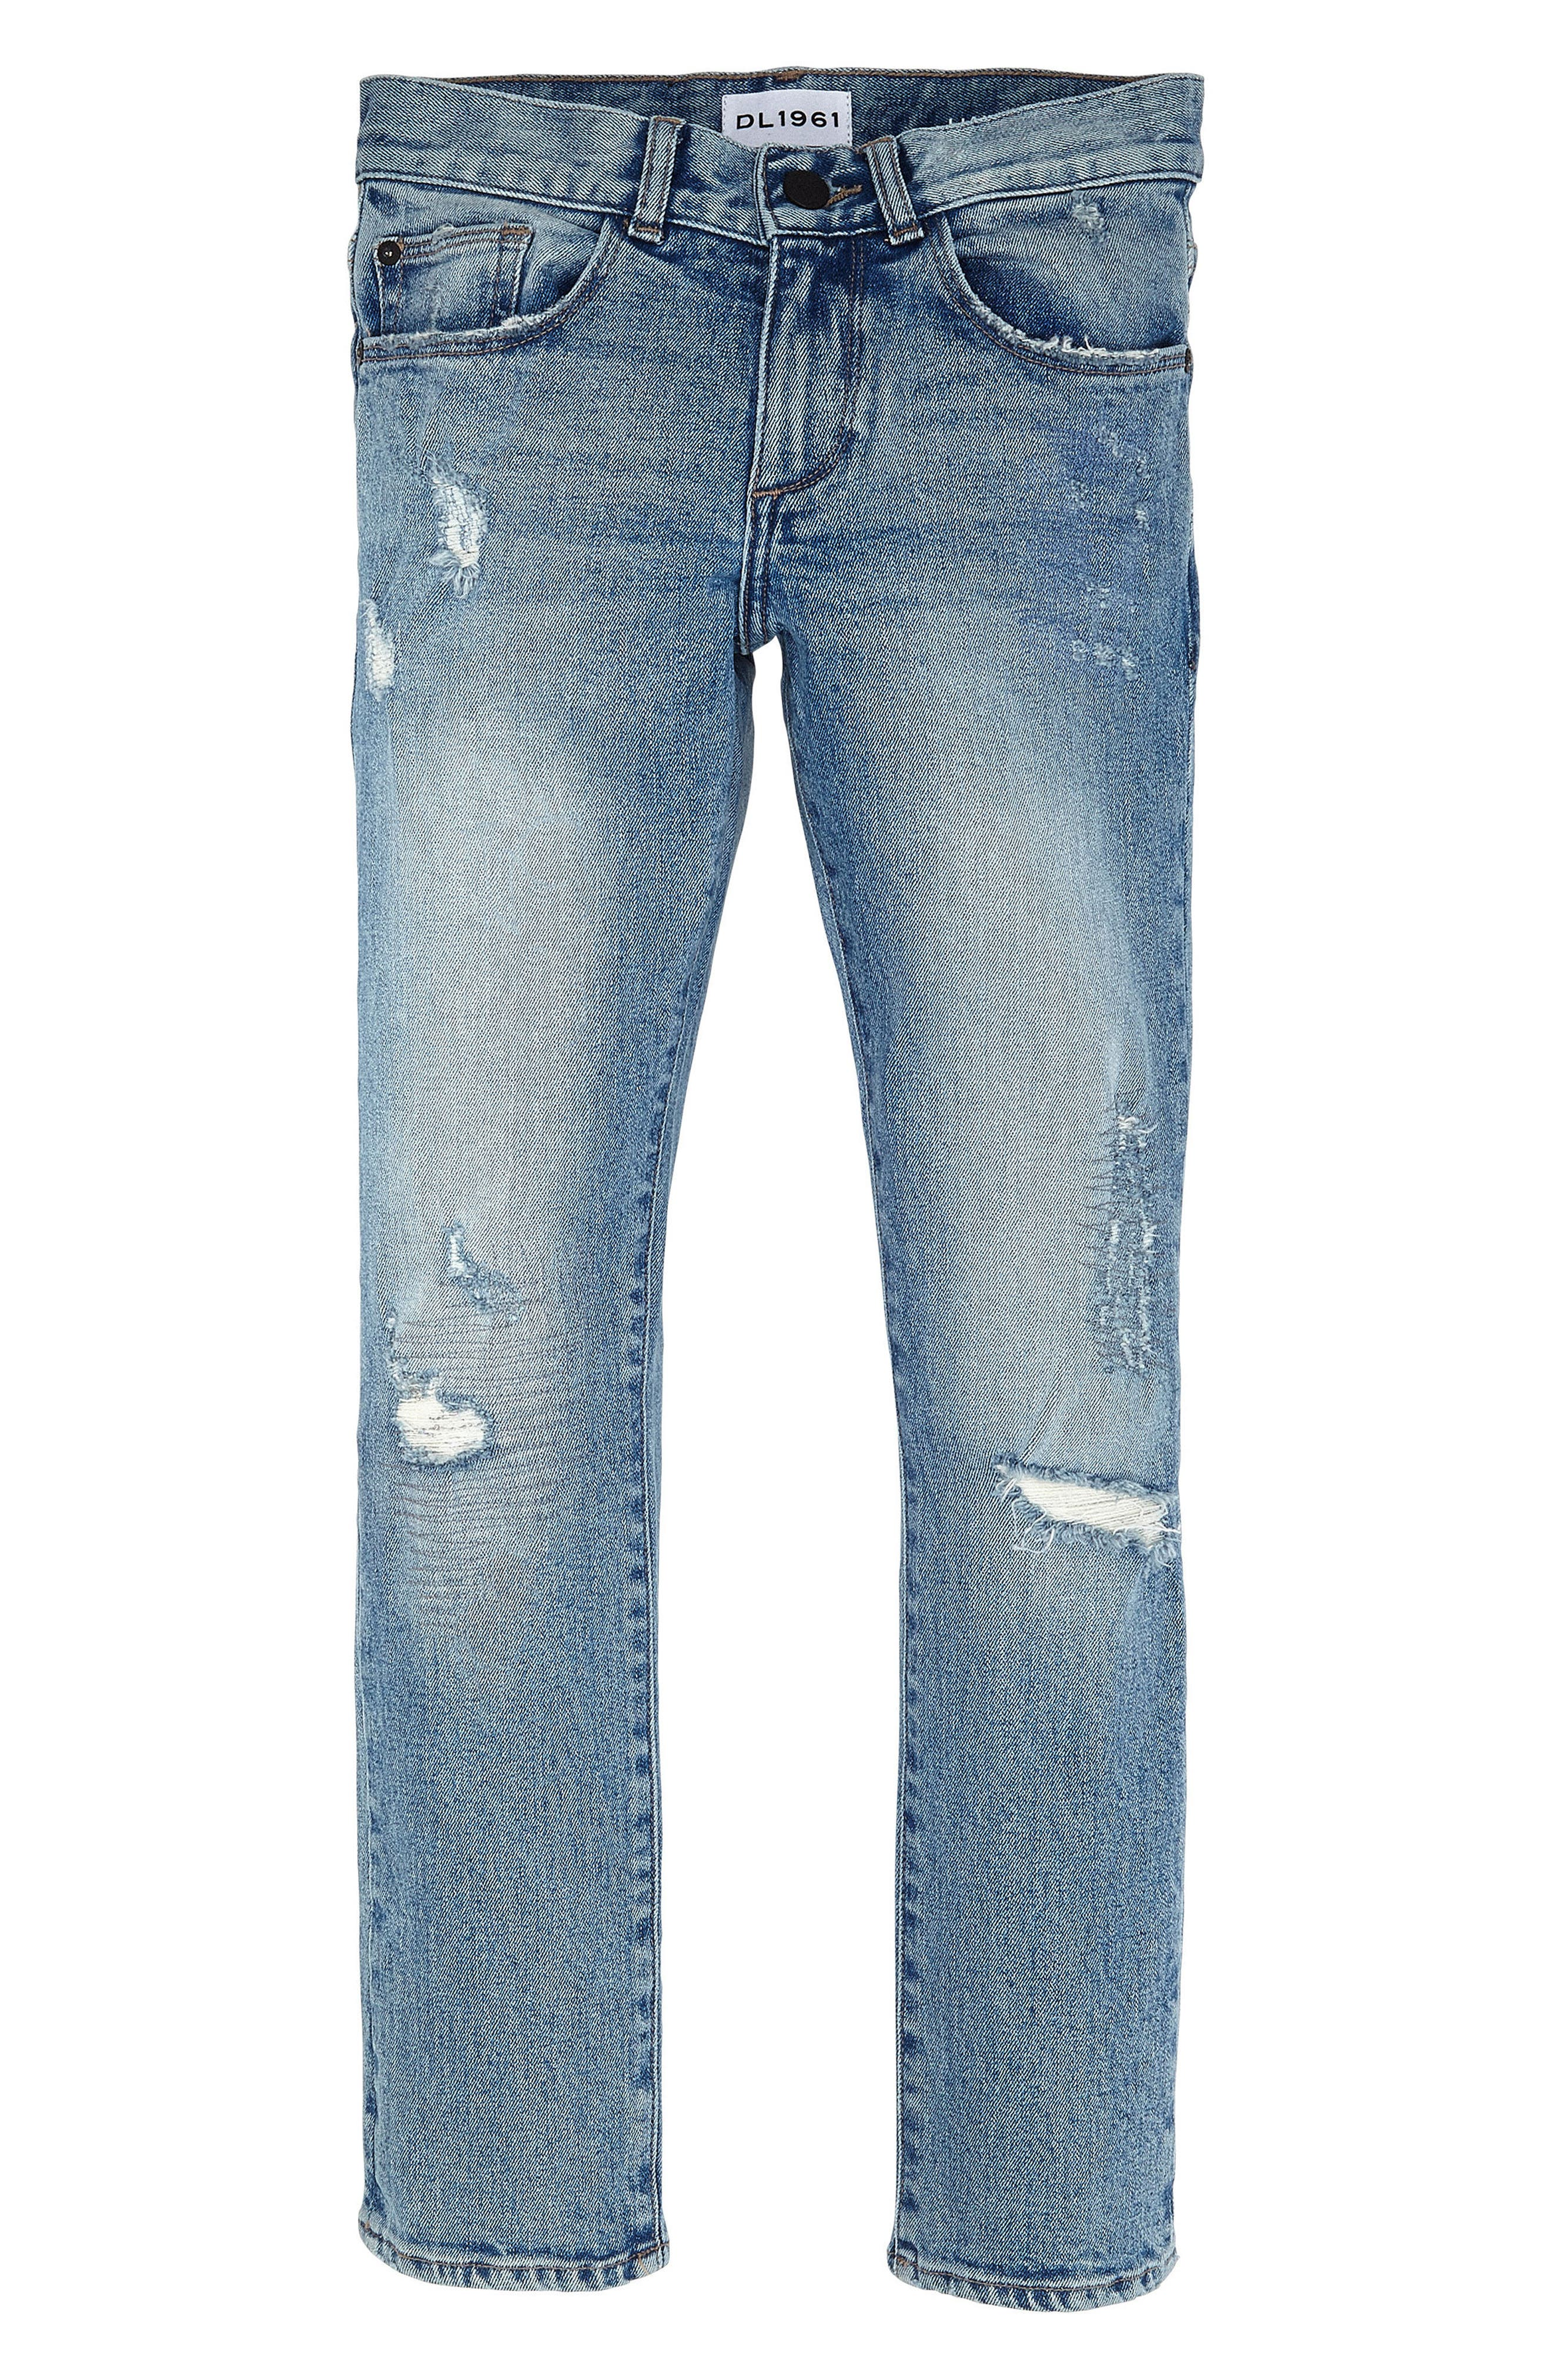 Main Image - DL1961 Hawke Skinny Fit Rip and Repair Jeans (Toddler Boys & Little Boys)